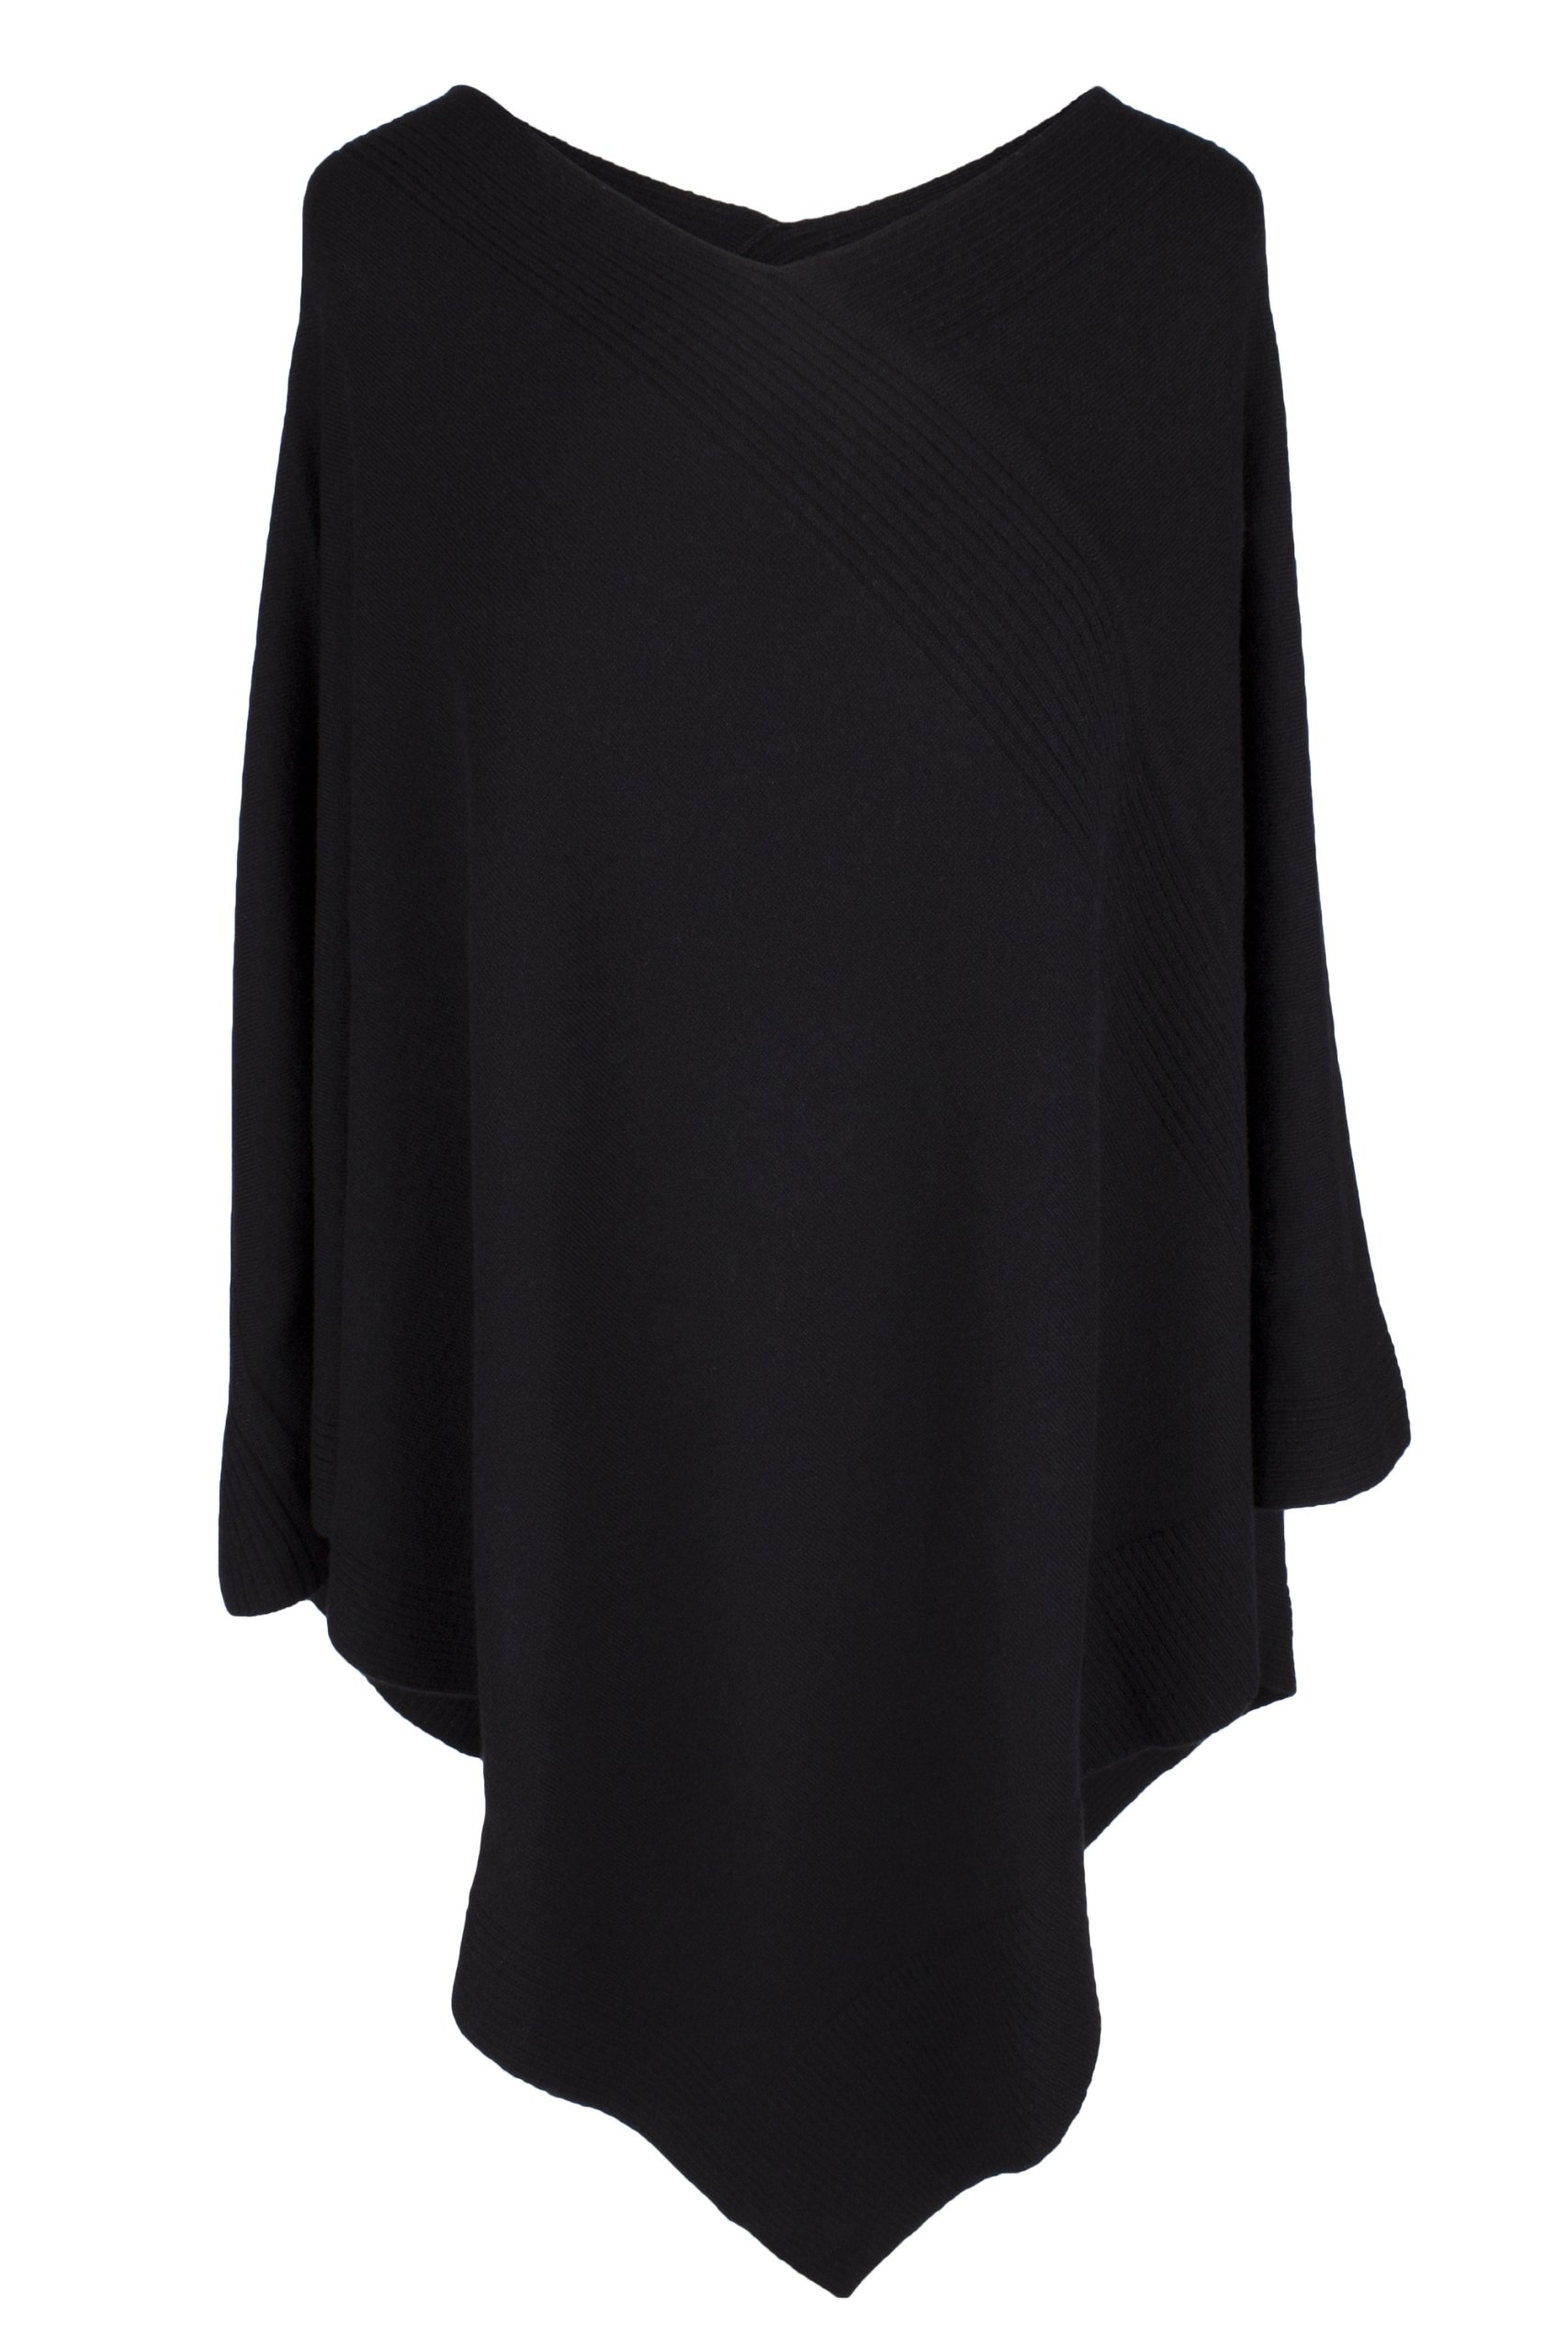 Love Cashmere Women's 100% Cashmere Poncho - Black - Made In Scotland RRP $600 by Love Cashmere (Image #1)